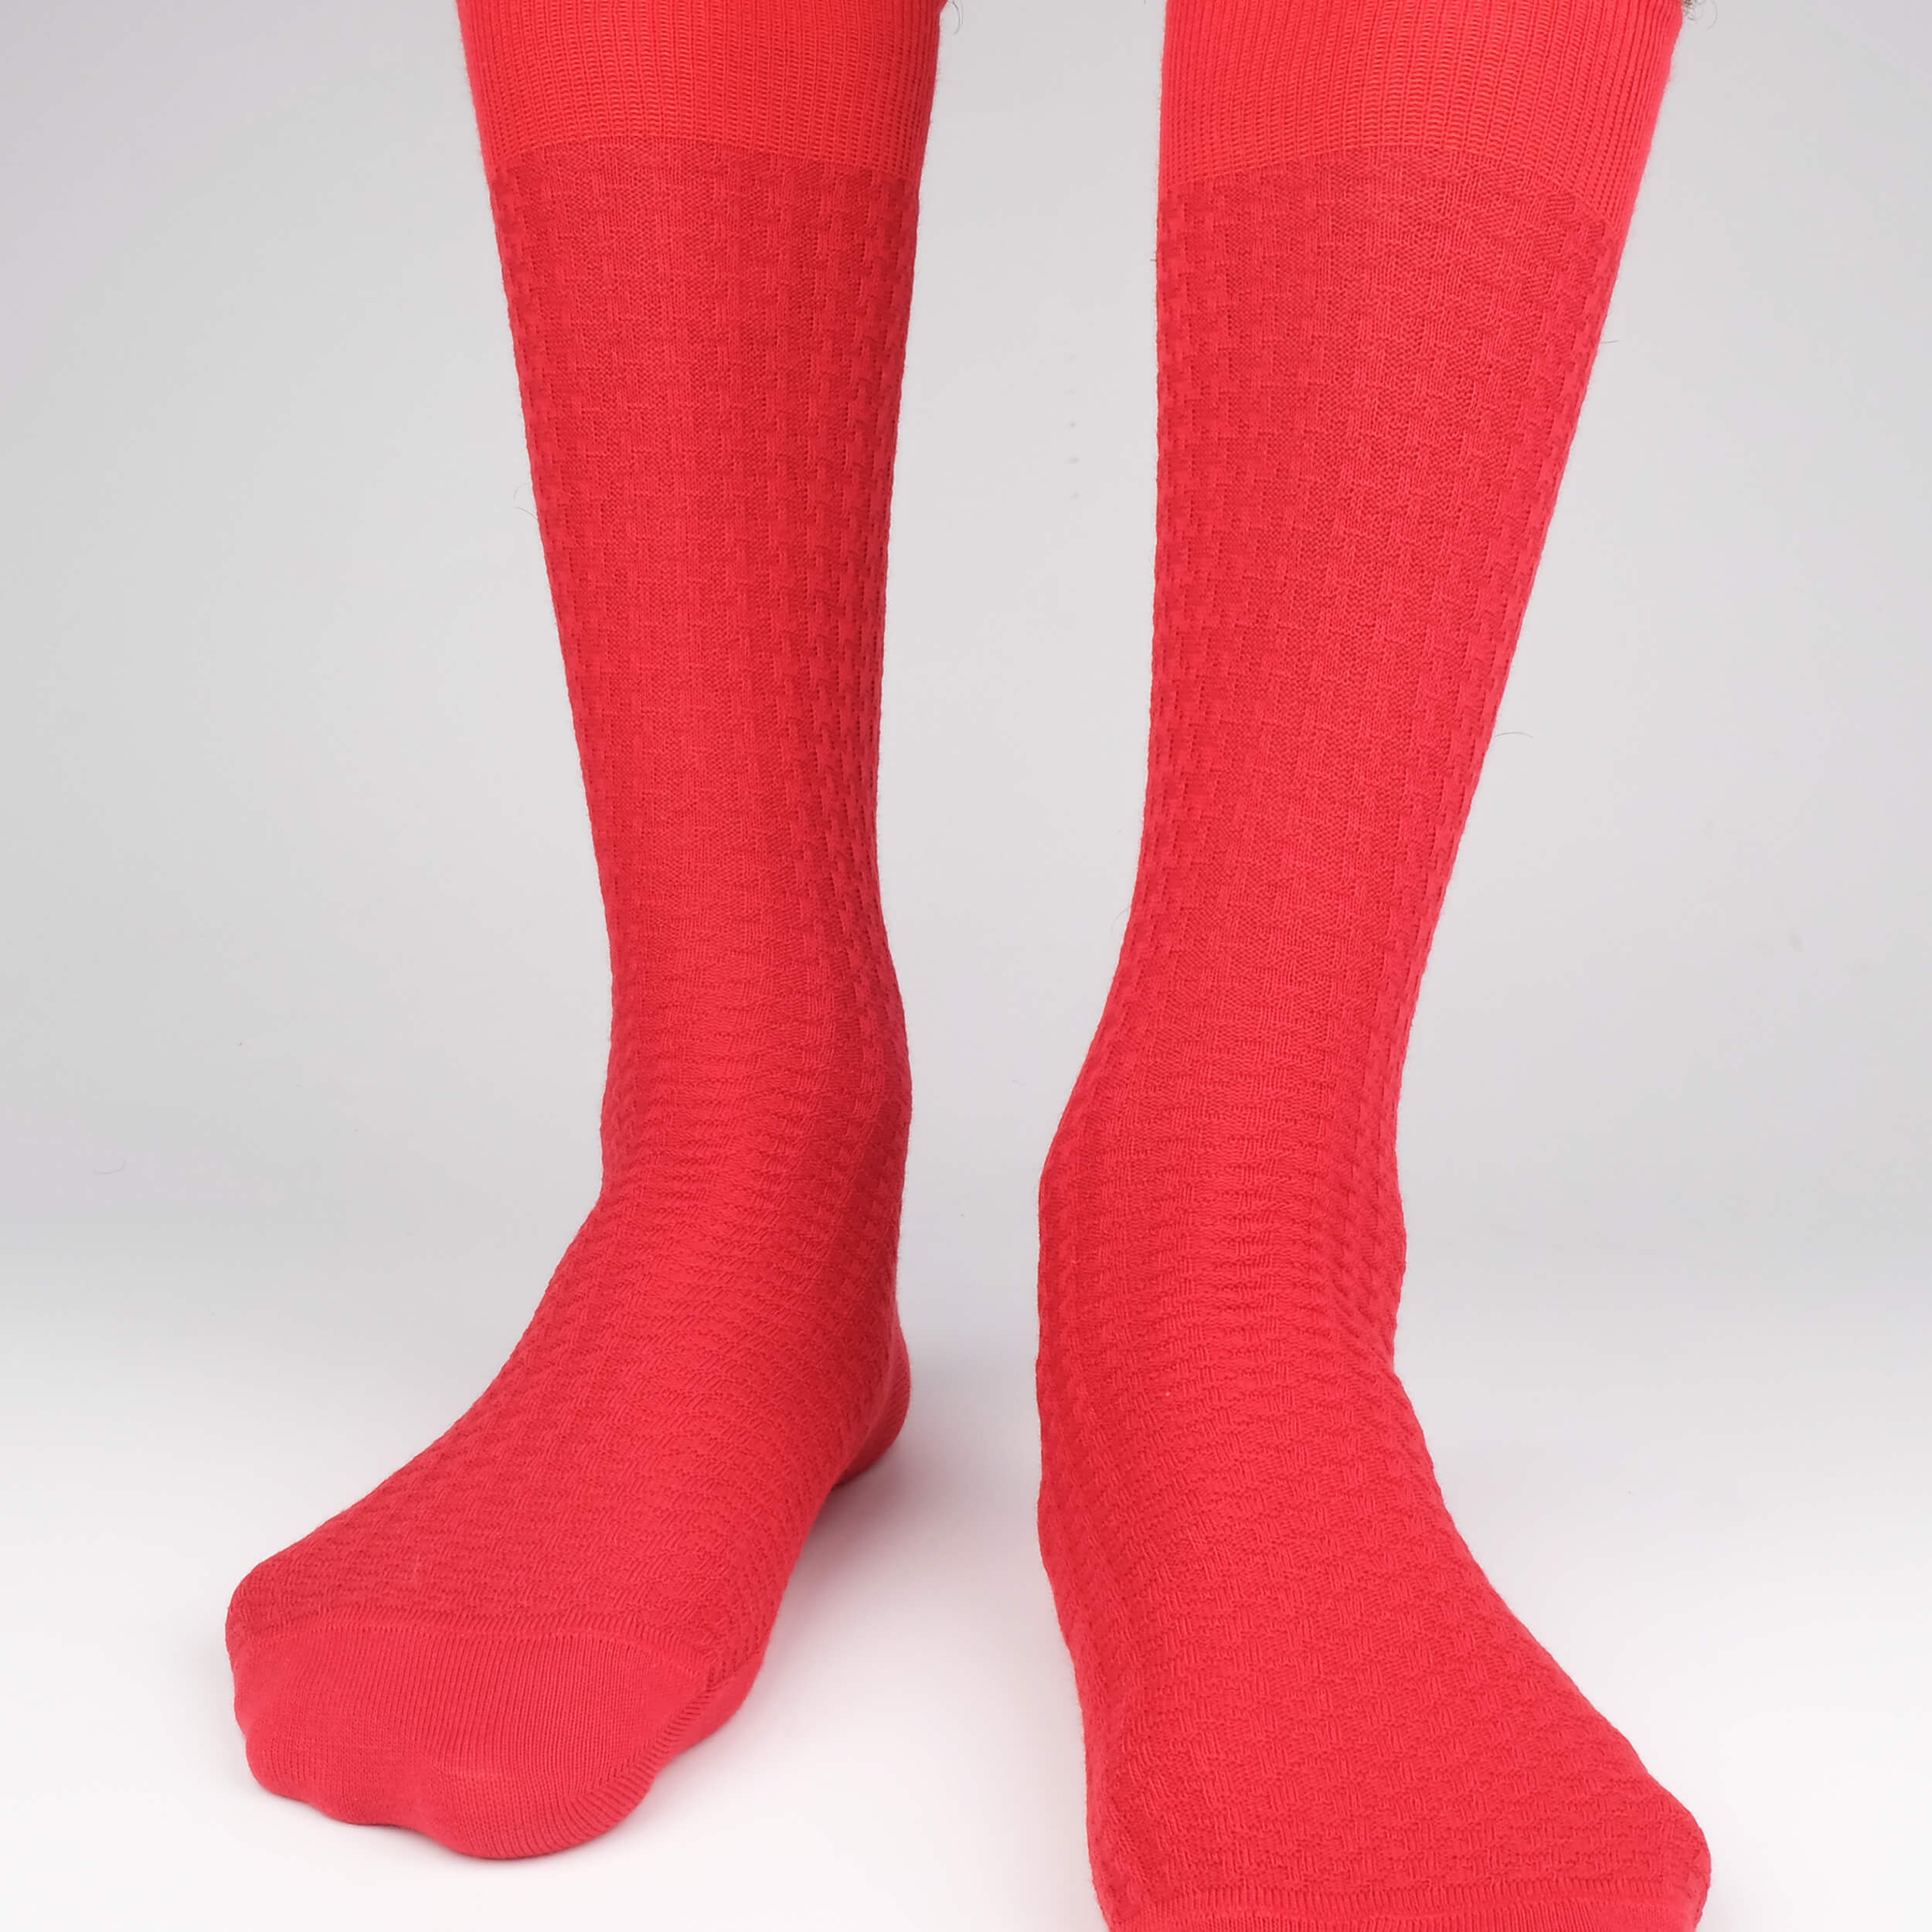 Hounds Waffle Textured Men's Socks - Red